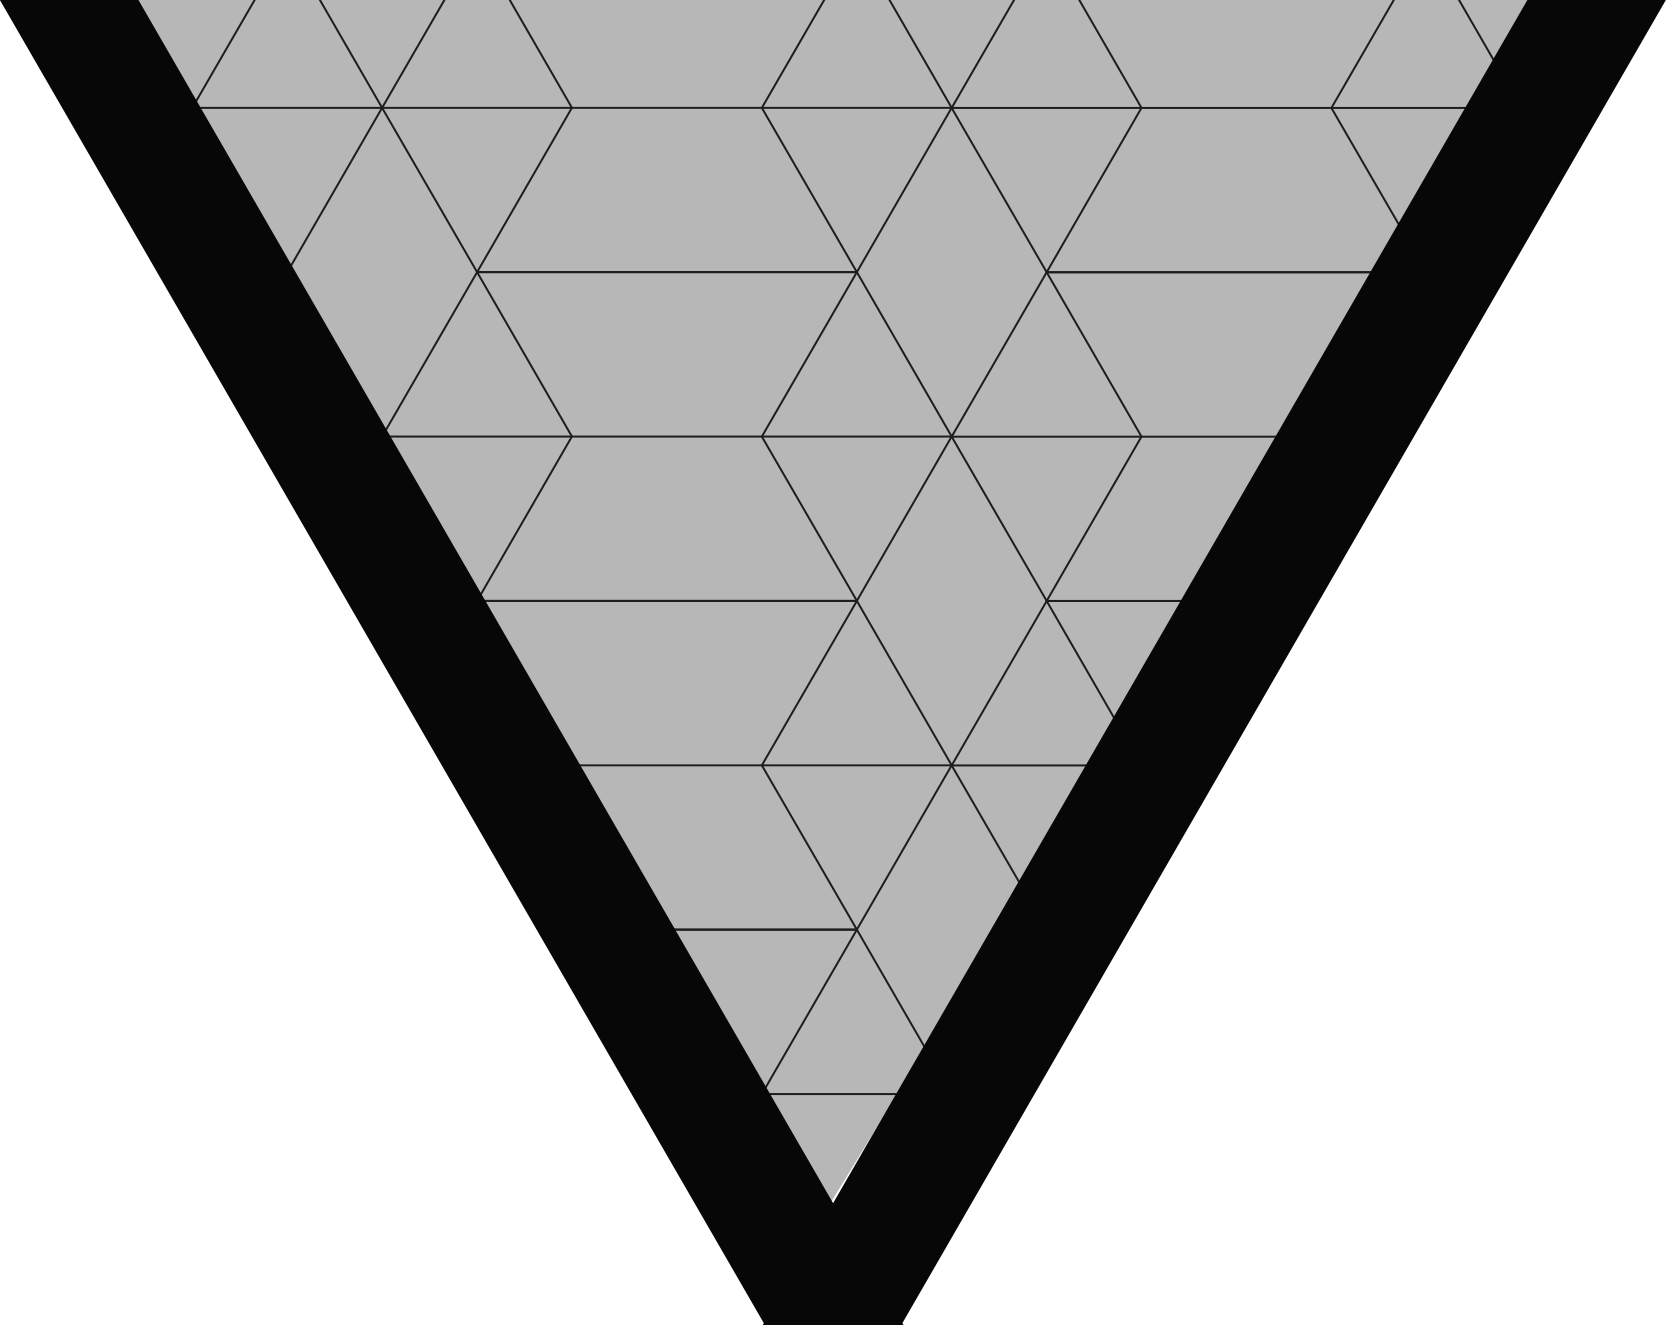 shape-down-darkgrey